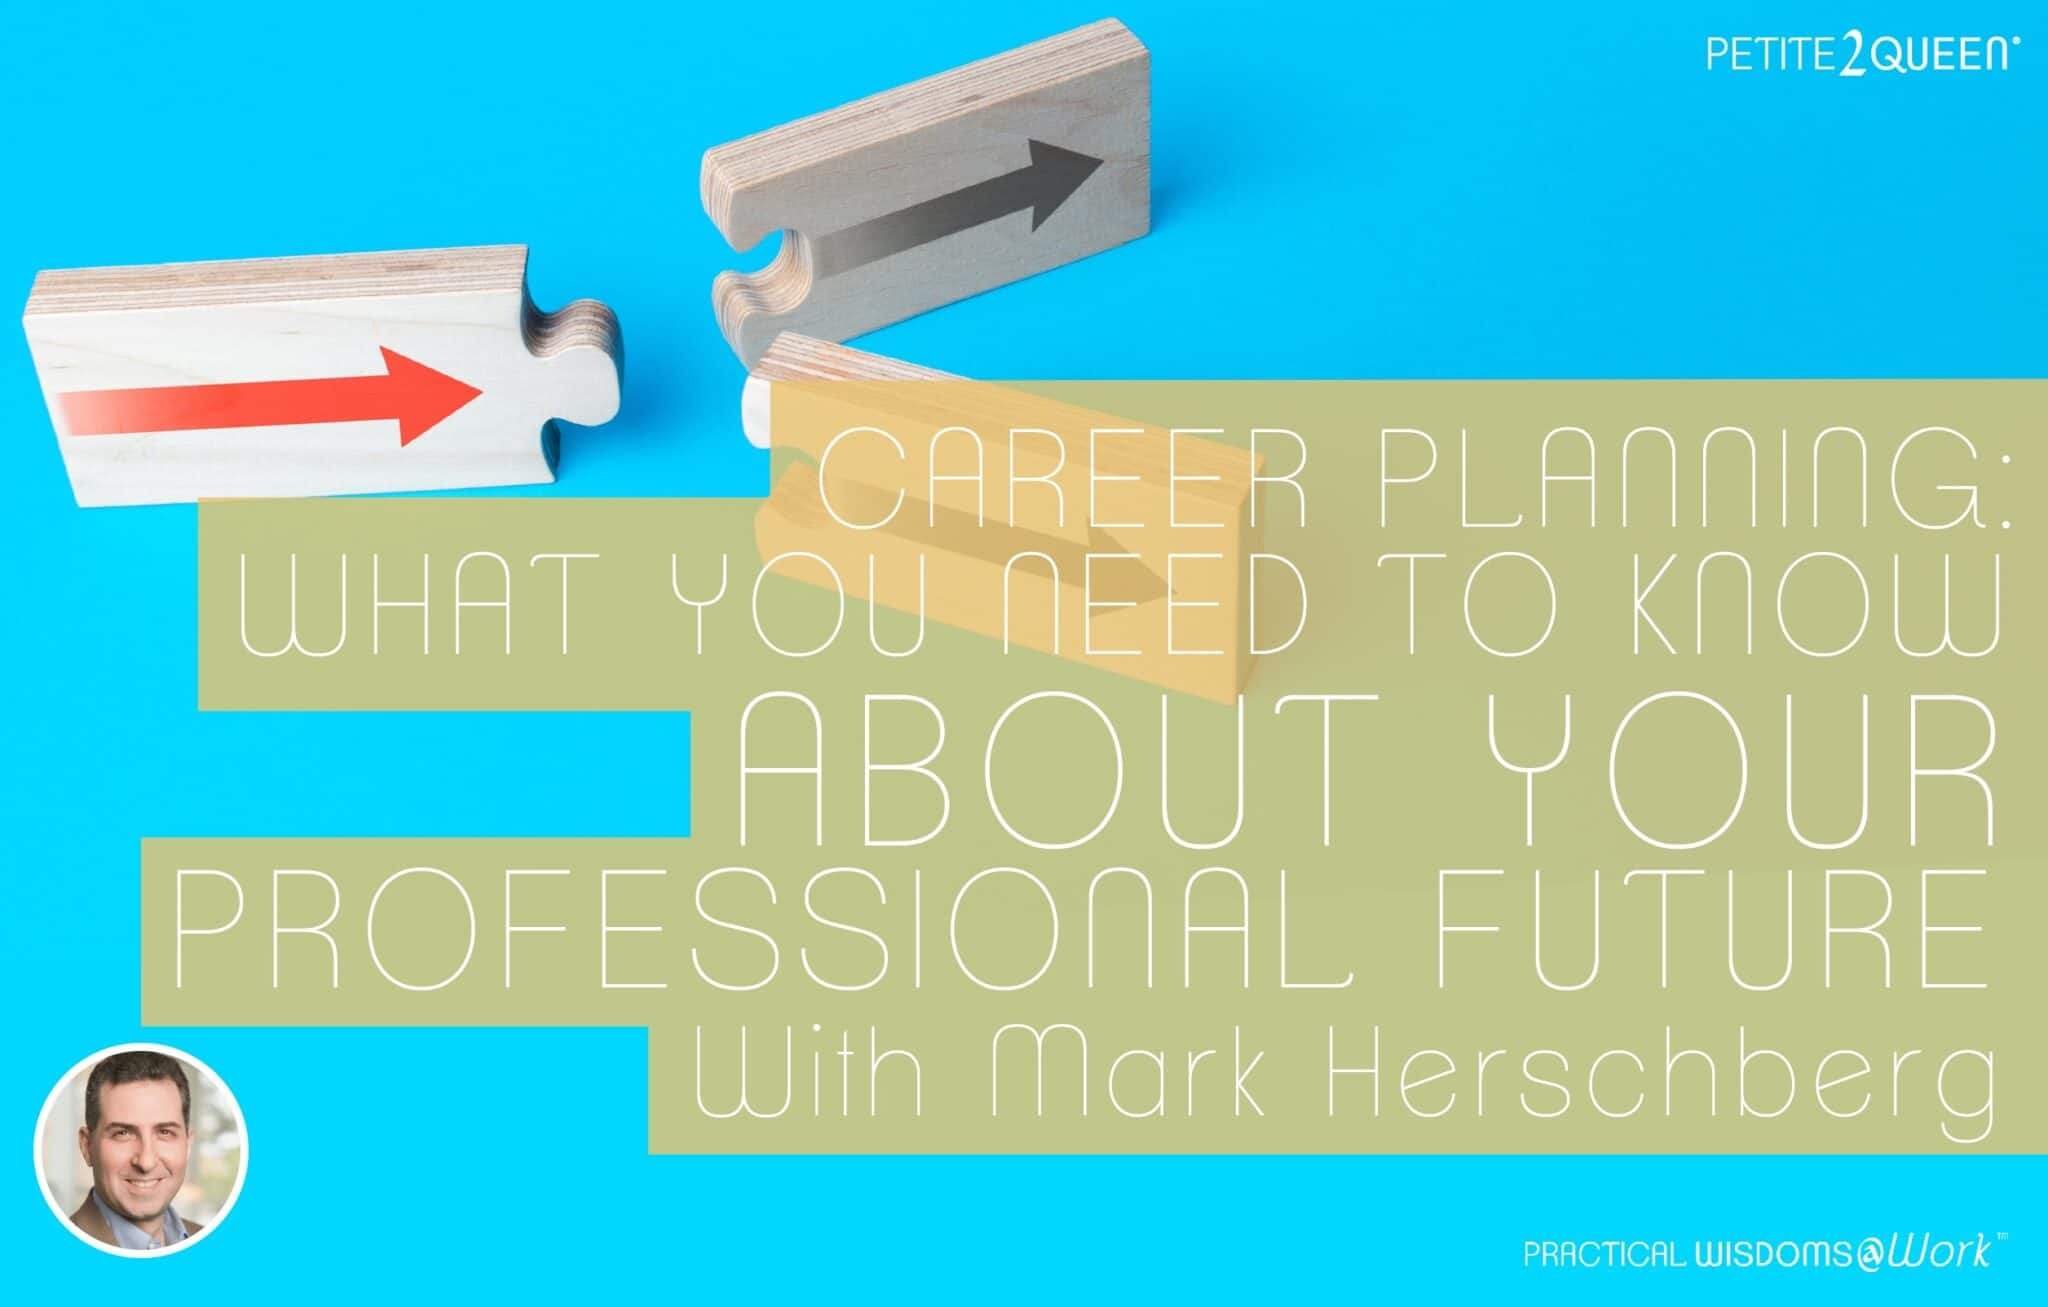 Career Planning: What You Need to Know About Your Professional Future